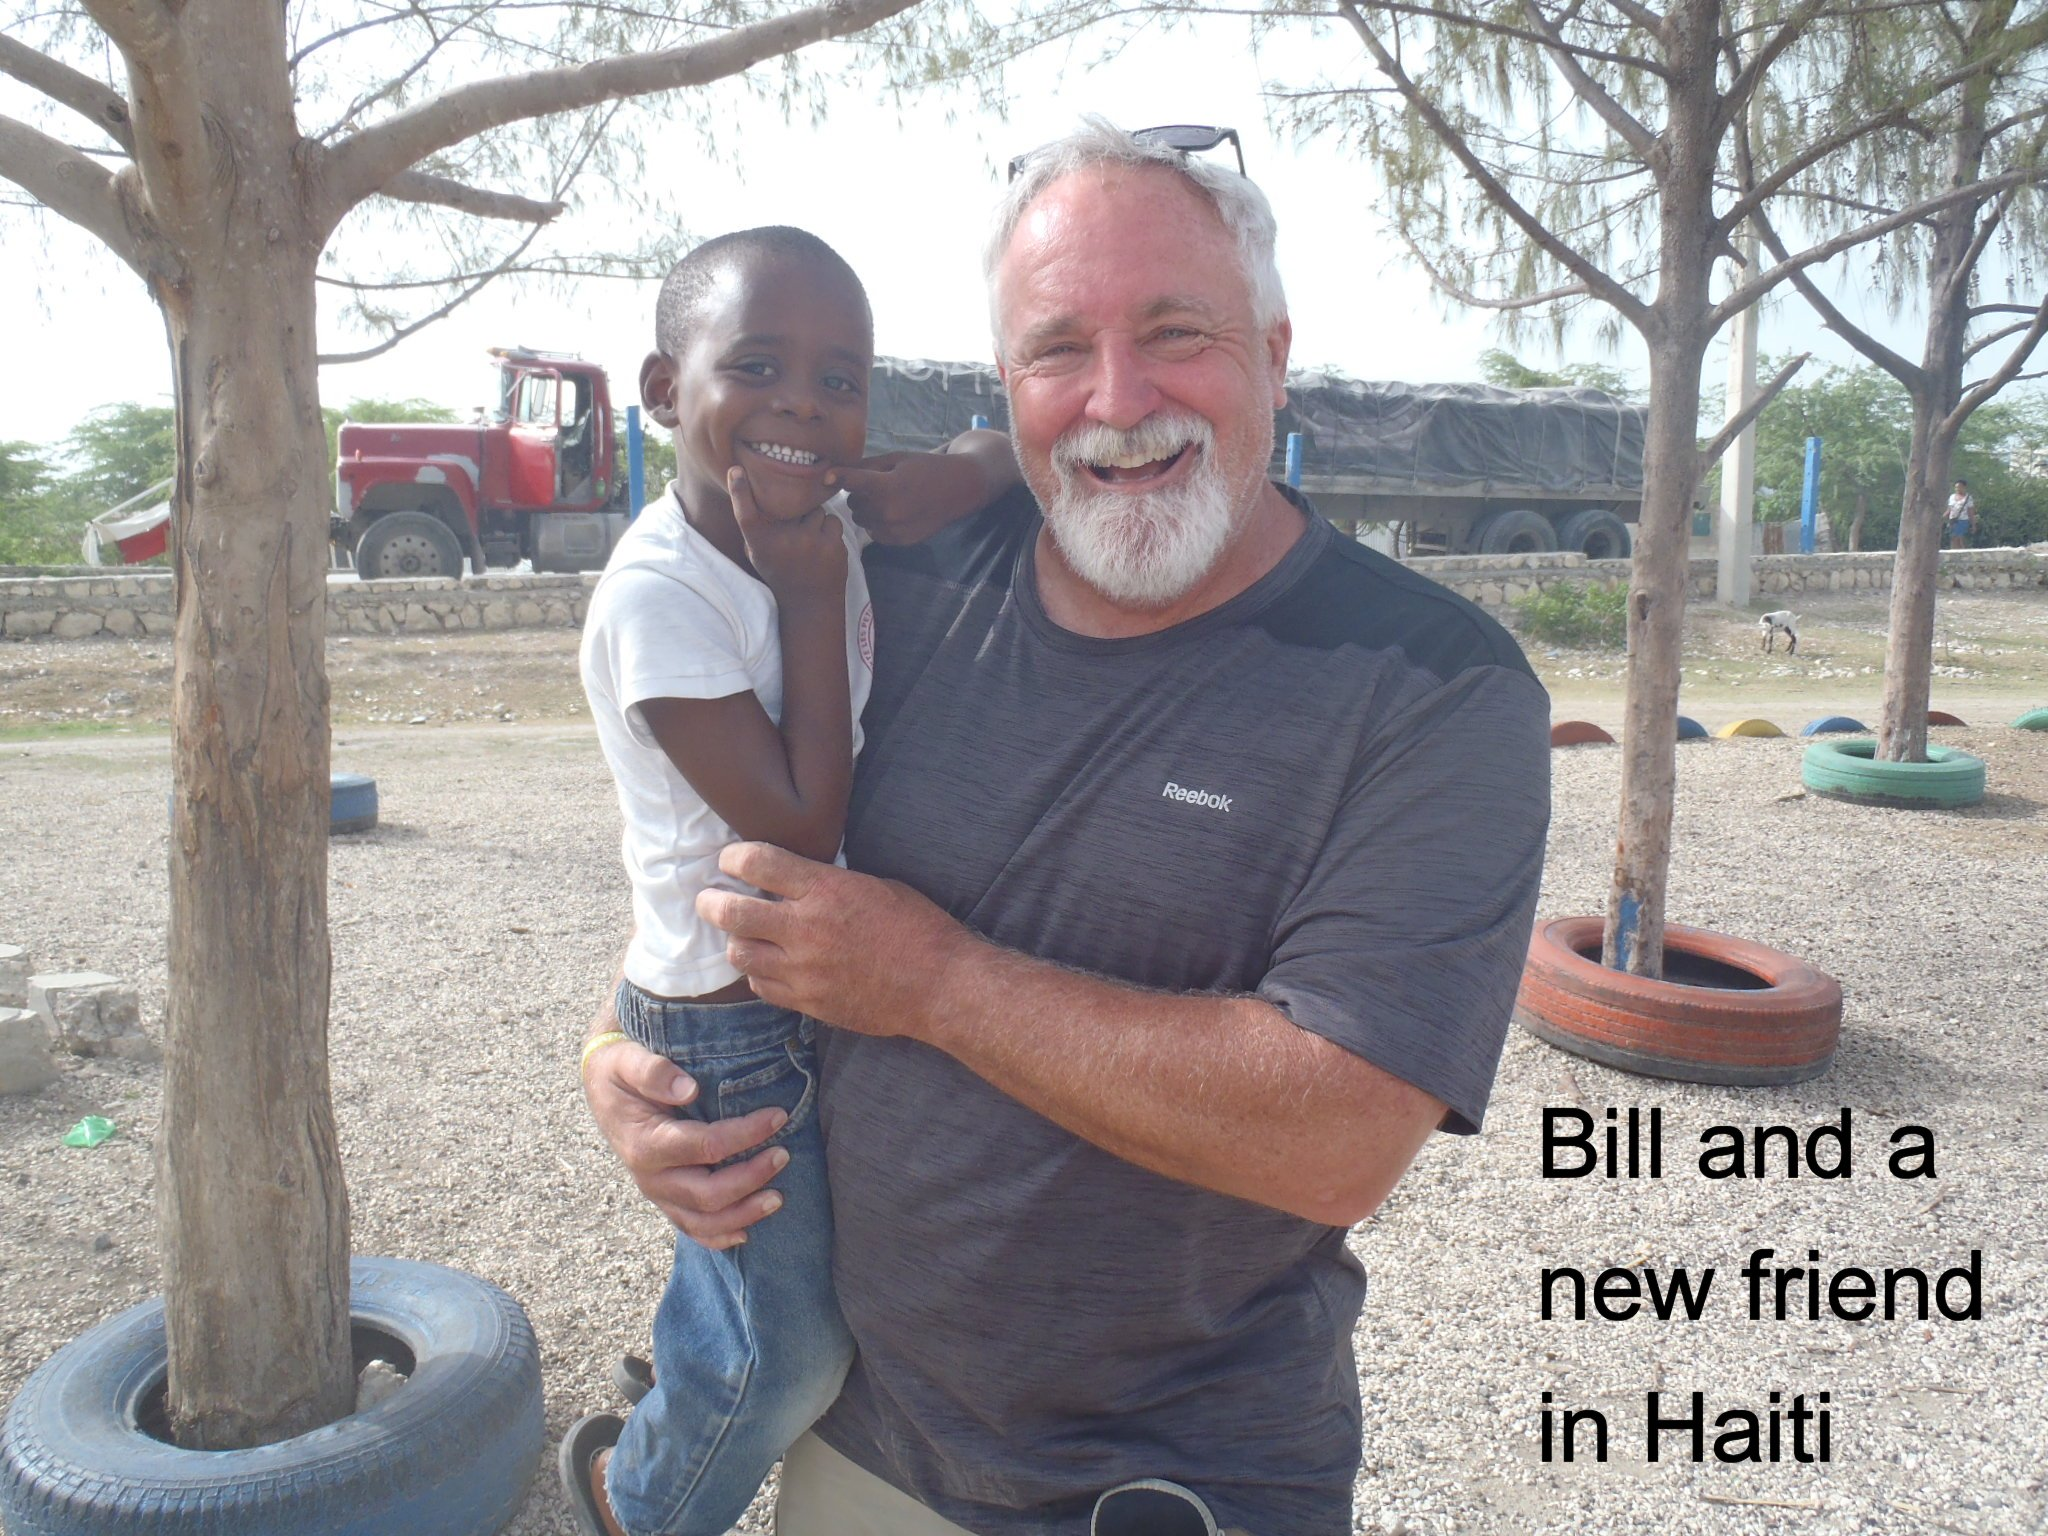 Bill and friend in Haiti